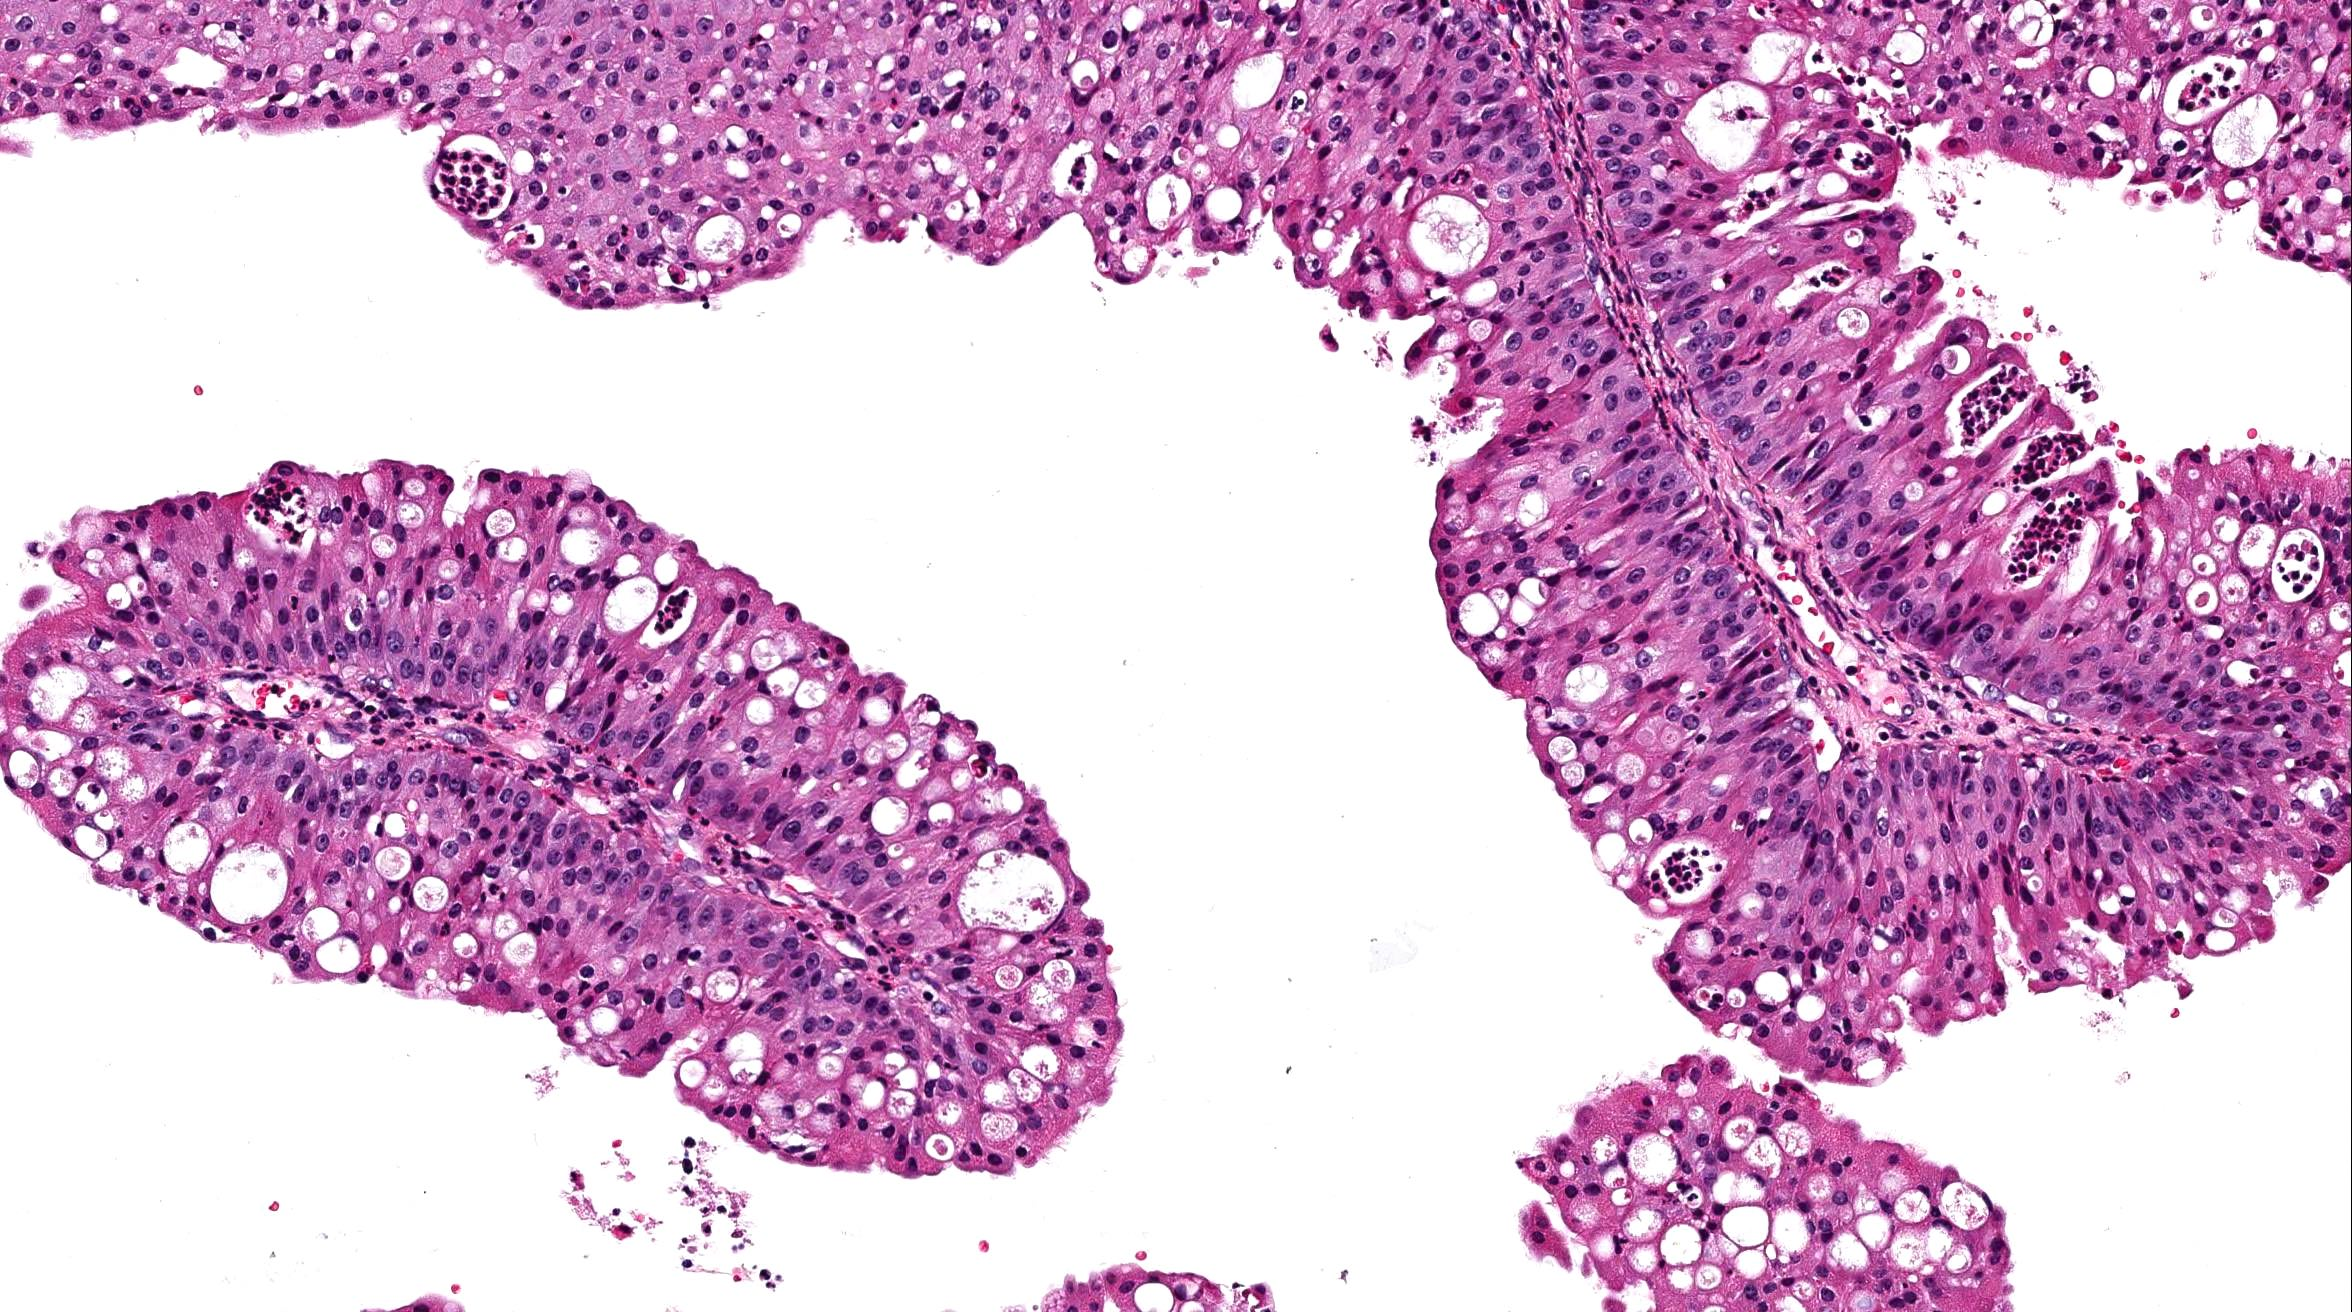 sinonasal inverted papilloma pathology outlines helminth therapy for cfs